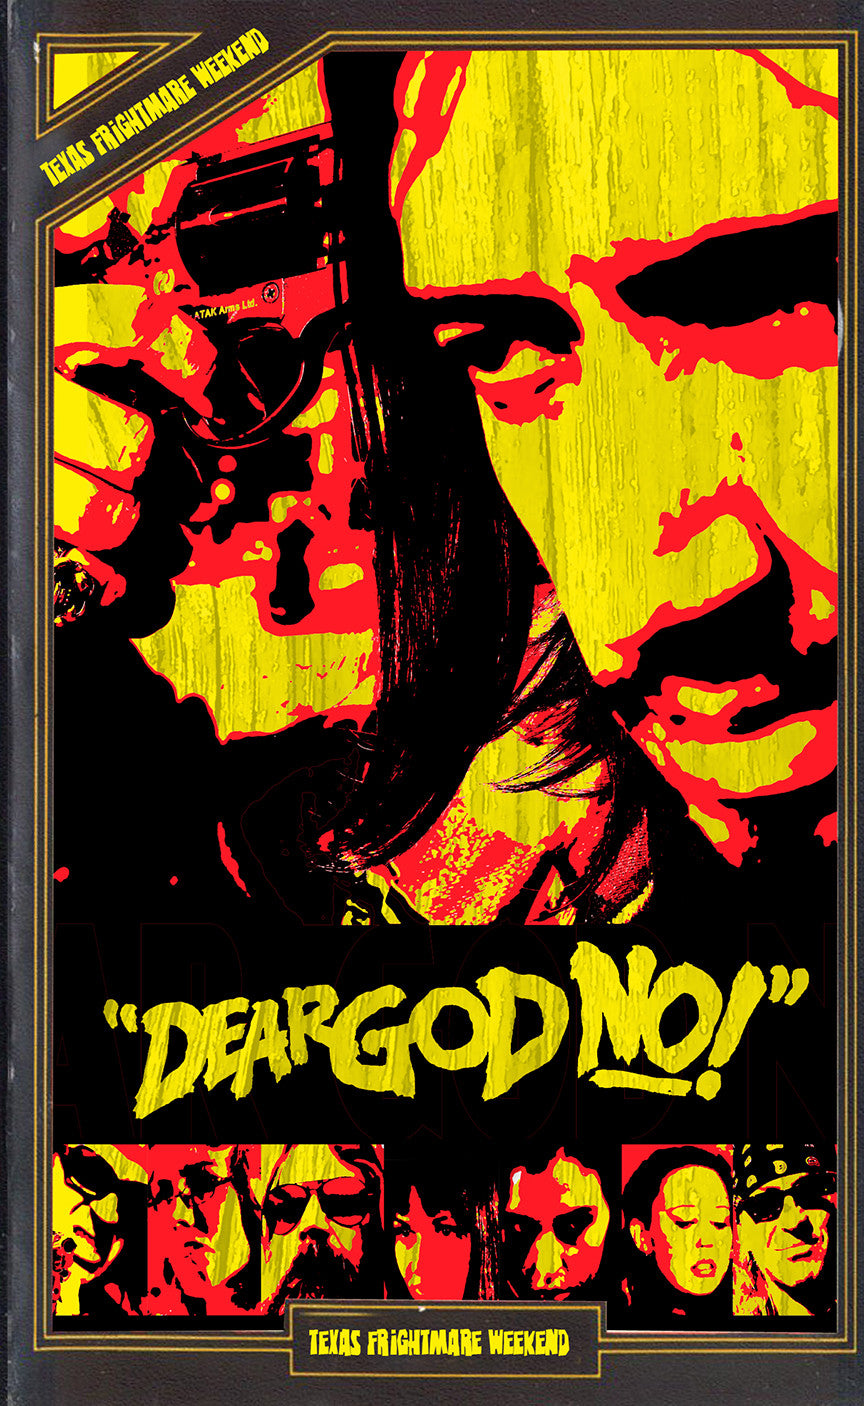 Dear God No! (Texas Frightmare Weekend 2012 Variant #2)